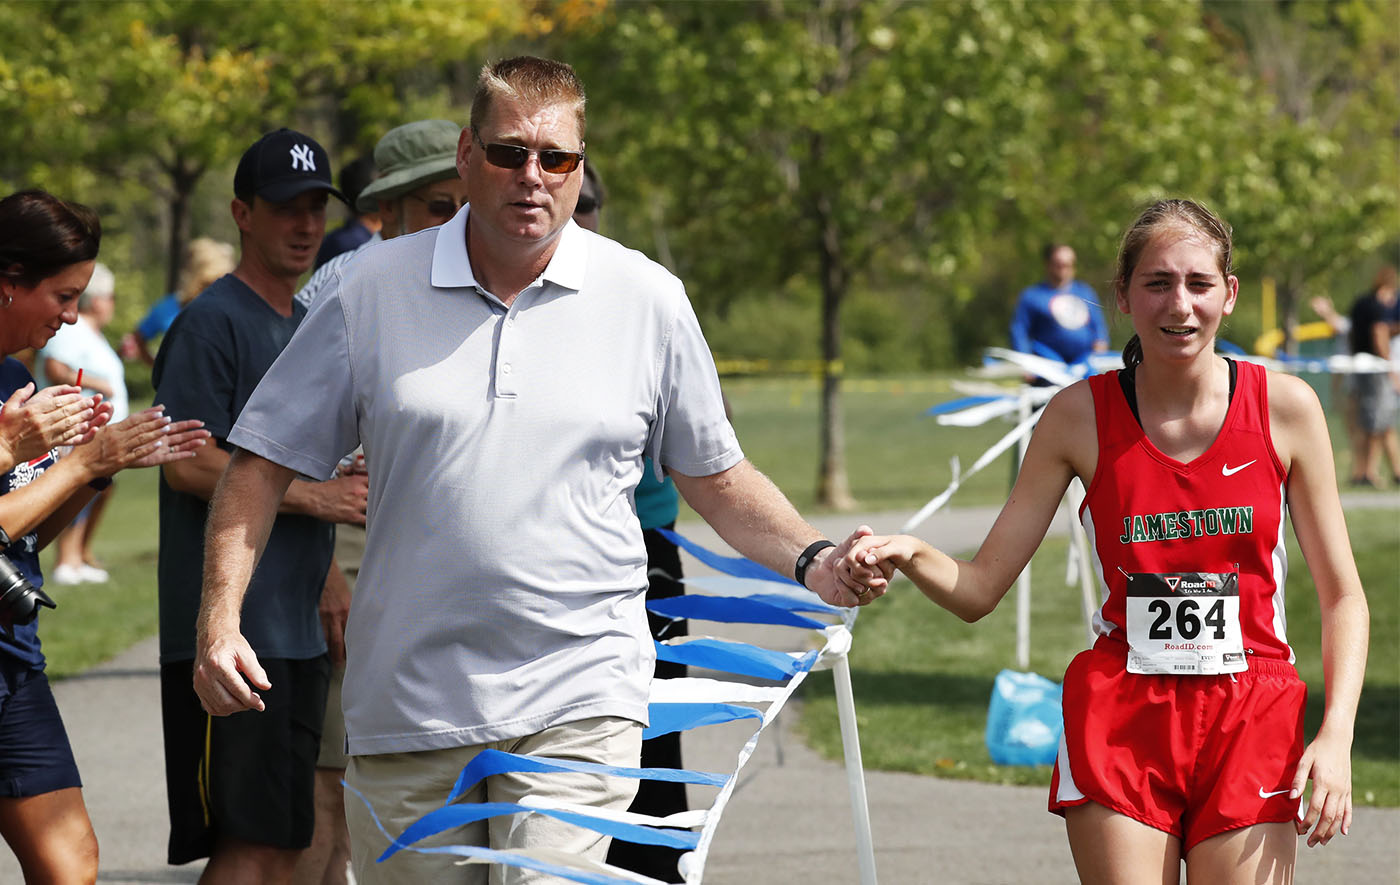 Pictures, Walter Hoss holds his daughter, Nicole's hand as they walk to the the finish line as she overheated as she competed in the large schools girls cross country meet at Sunshine Park in West Seneca on Saturday, Sept. 10, 2016. (Harry Scull Jr./Buffalo News)